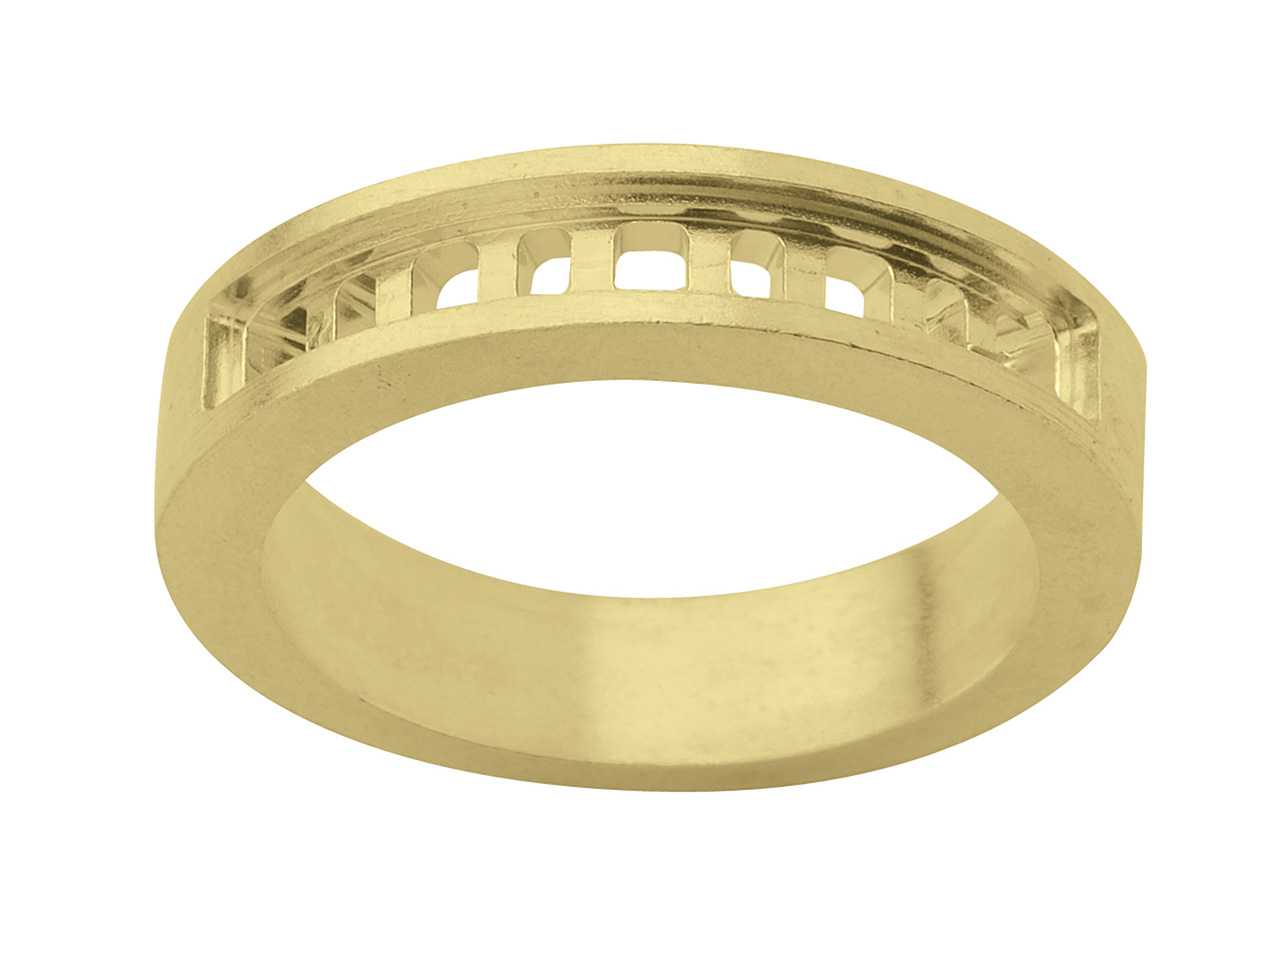 Alliance 00902 pour 5 princesses de 3x3 mm  + 4 baguettes de 2,5 x1,7mm, Or Jaune 18 k